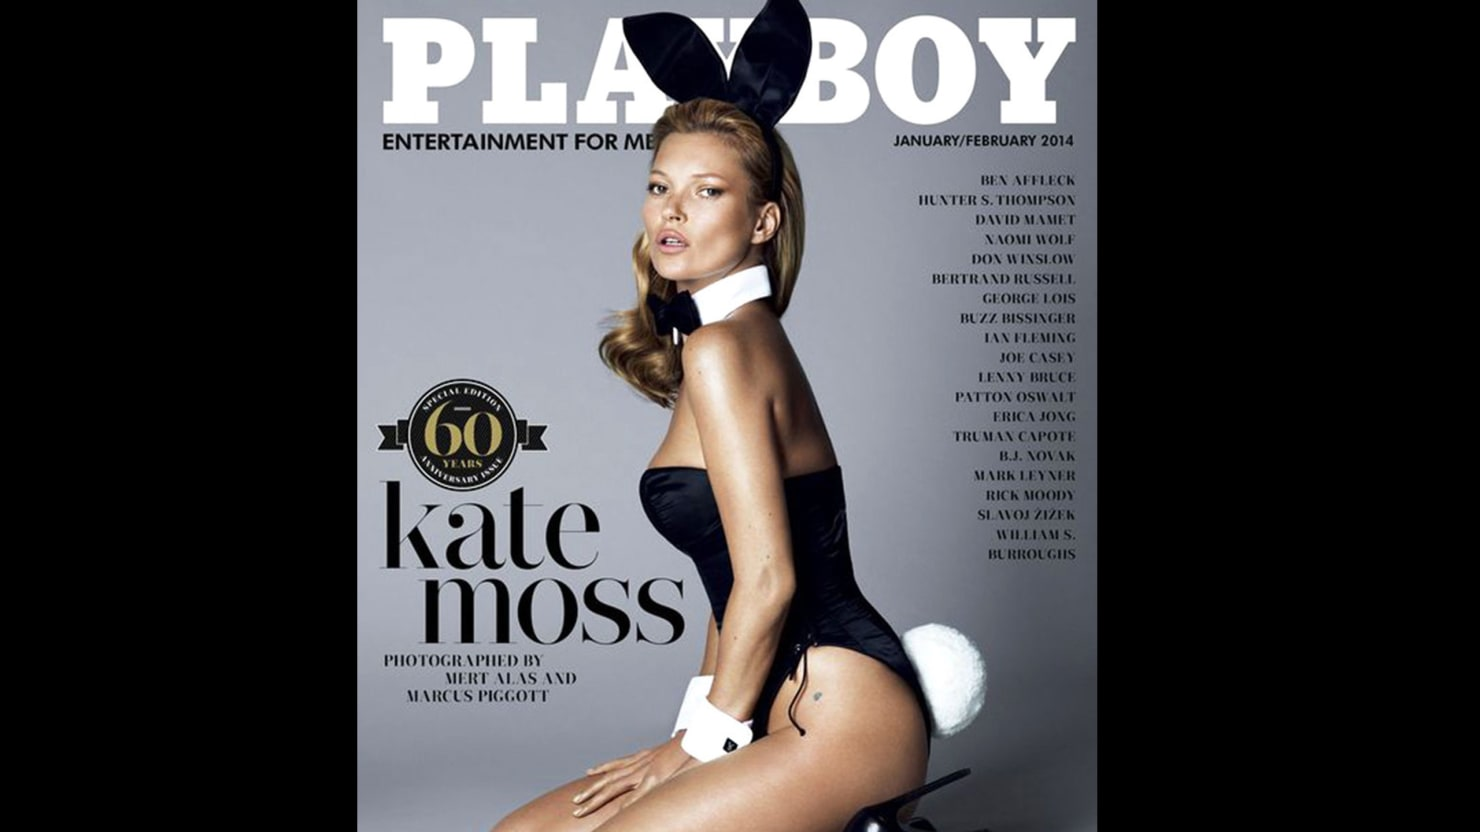 Not So Fast Playboy the Kate Moss Cover May Not Be a